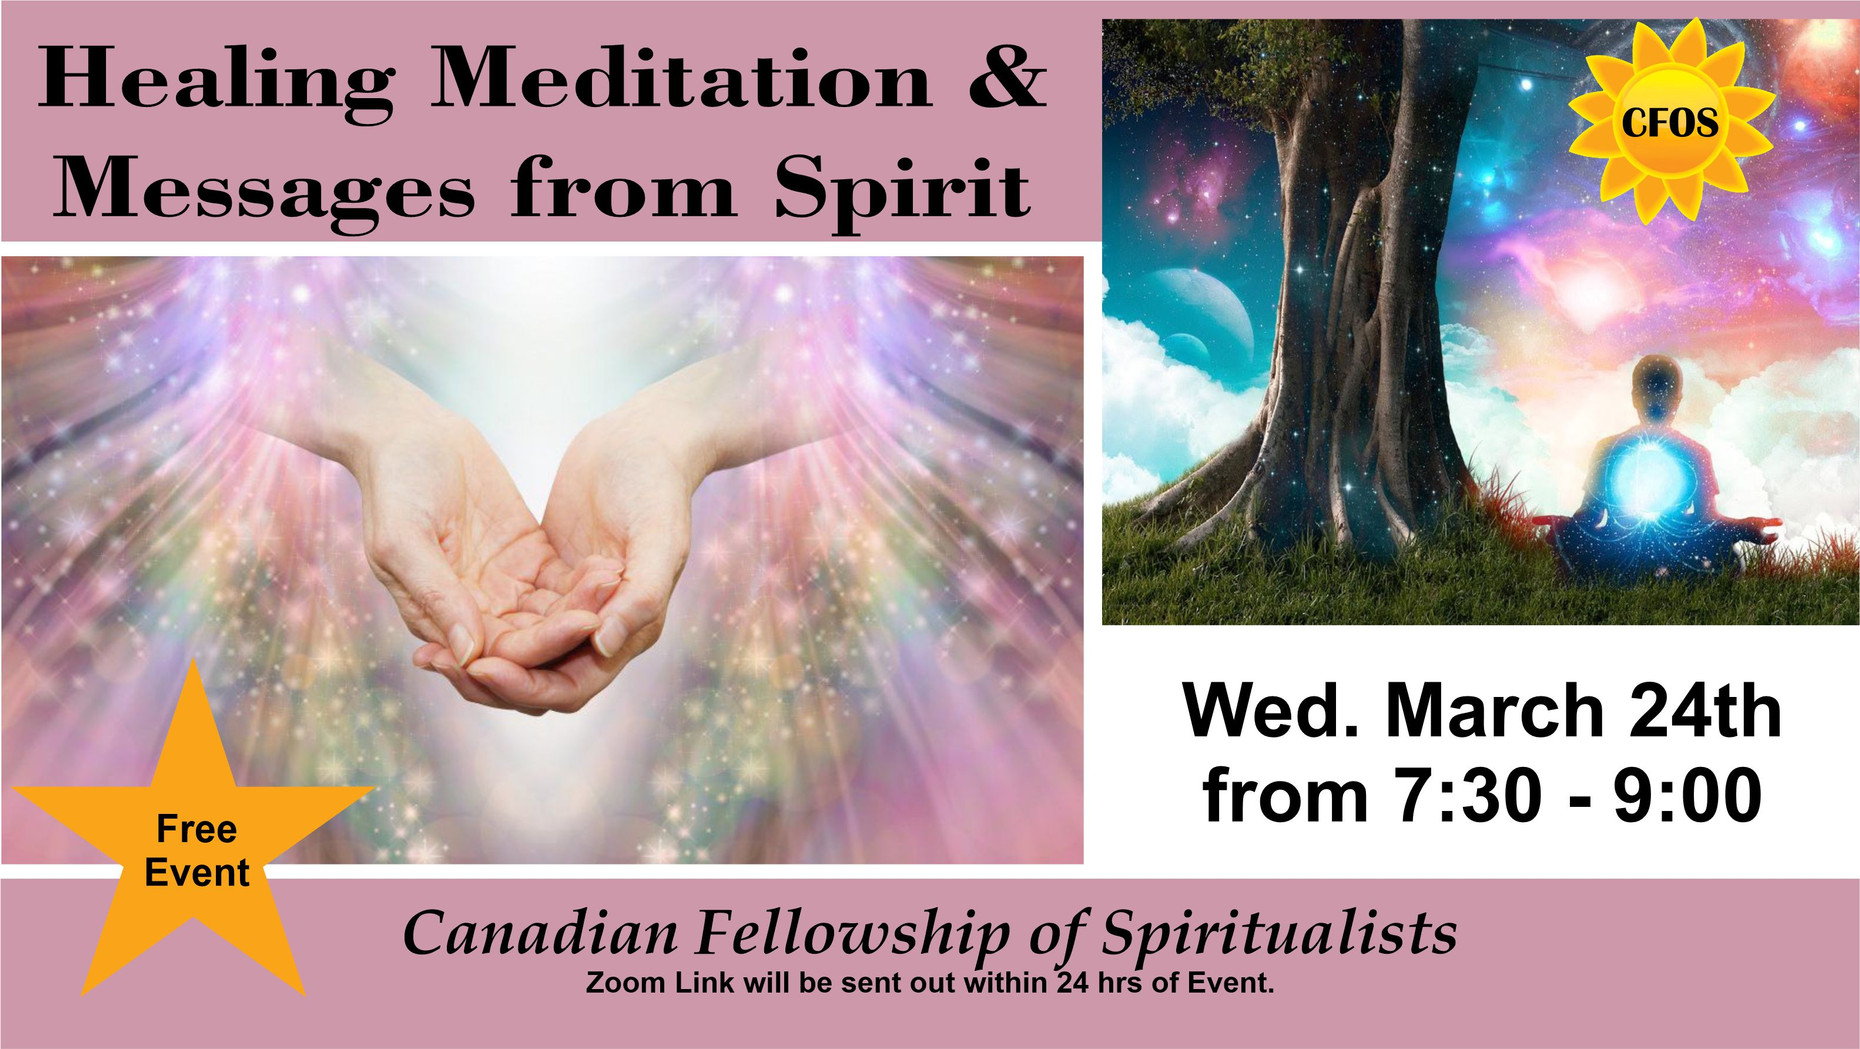 Guided Healing and Meditation & Messages